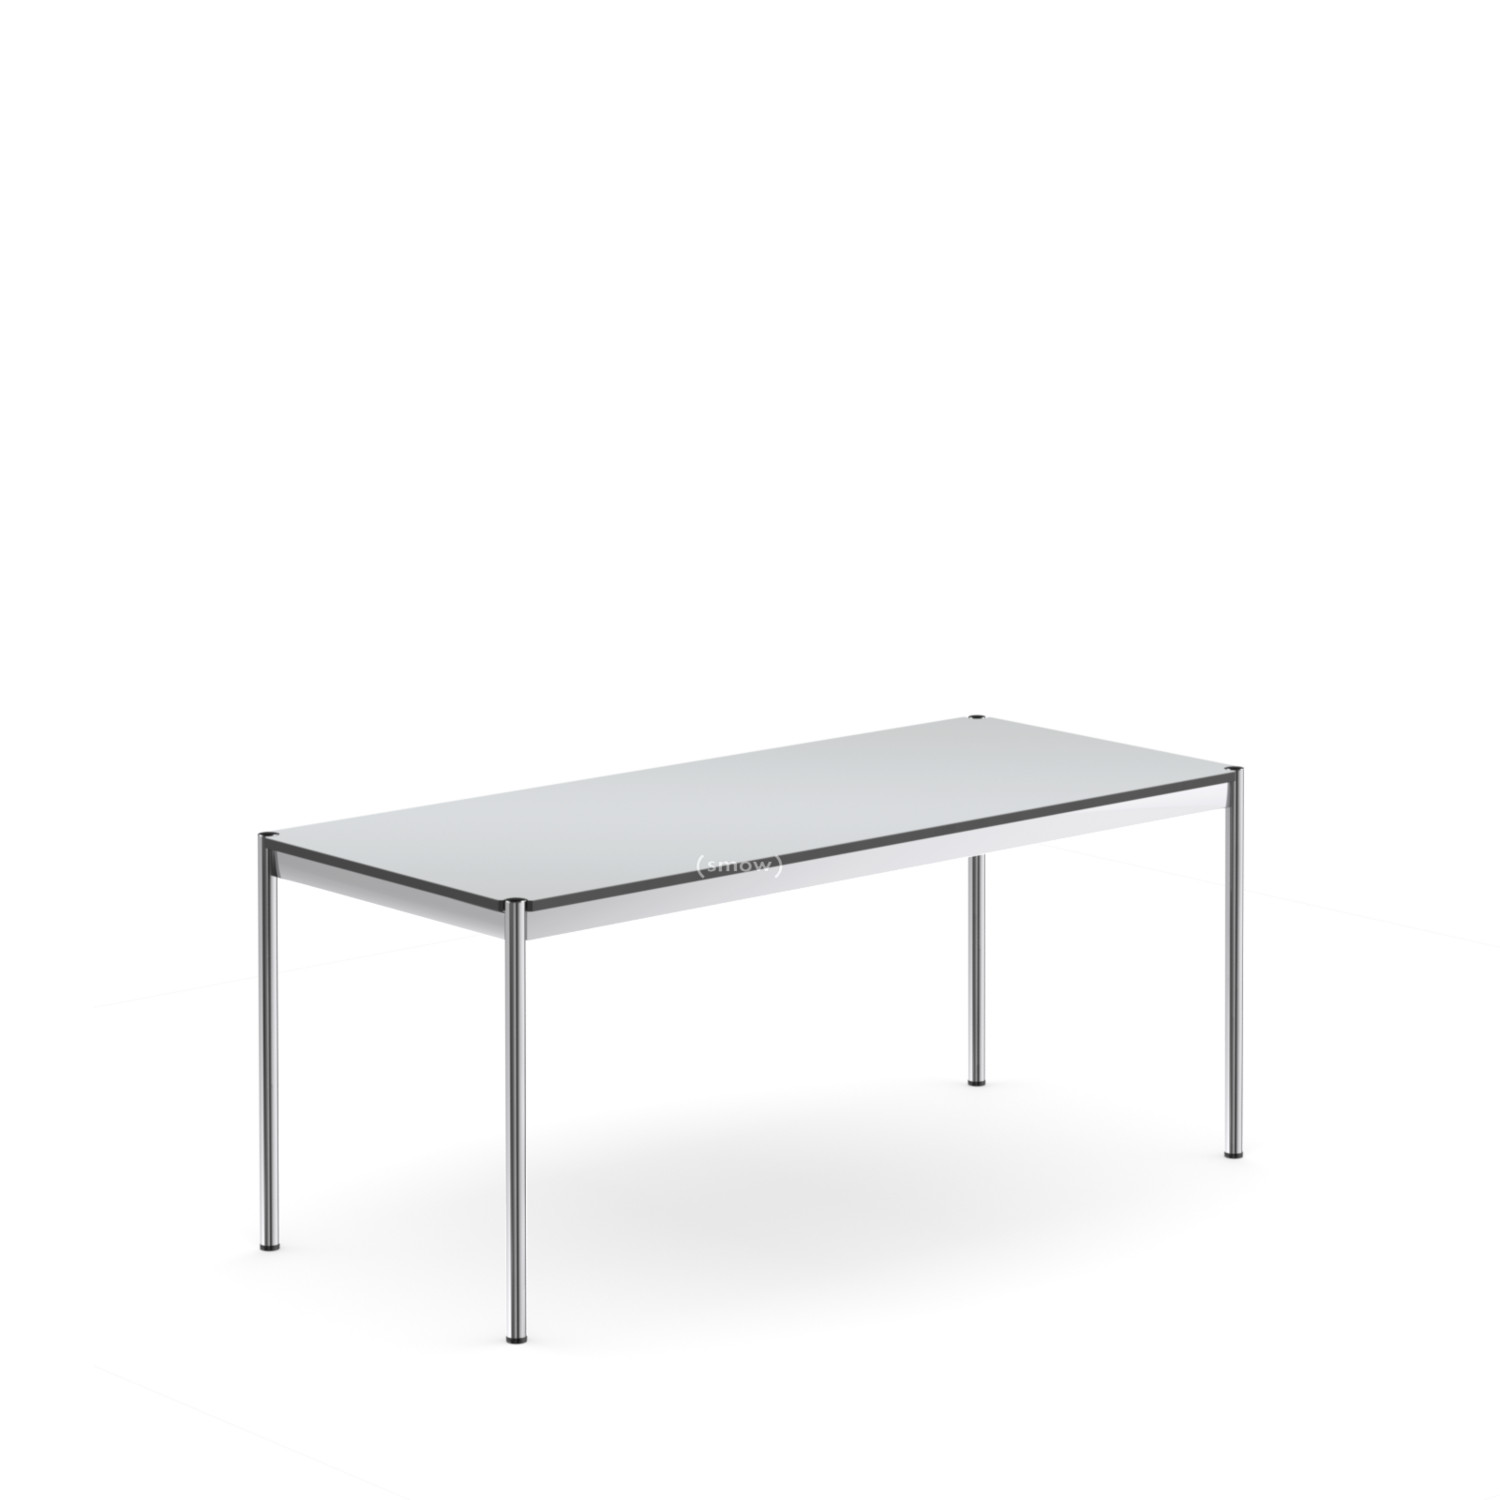 usm haller table 75 x 175 cm laminate pearl grey by. Black Bedroom Furniture Sets. Home Design Ideas